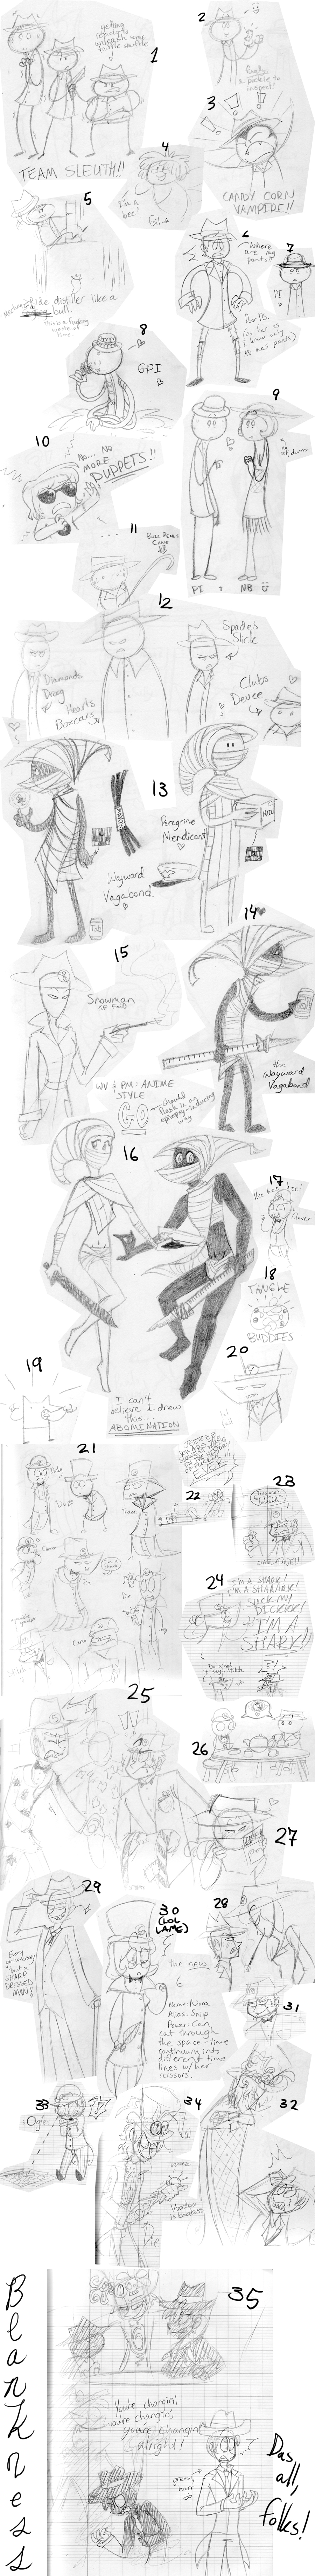 ! 9_to_5 rn ace_dick animestuck arm_around_shoulder art_dump au beverage blood blush bq bromance bull_penis_cane c4 candy_corn_vampire cane cans cd clover clubs_deuce dave_strider dd diamonds_droog die doze effigy fanfelt felt fin food godhead_pickle_inspector grayscale hb heart hearts_boxcars honeybee_professor humanized itchy jack_noir mayor_sash meme nakkirz nervous_broad parody peregrine_mendicant pickle_inspector pm postal_cap problem_sleuth problem_sleuth_(adventure) queen_of_spades redrom regisword serenity shipping snowman spades_slick squiddles stitch stretch_of_the_imagination tab trace trusty_knife voodoo_doll wayward_vagabond weasels word_balloon wv